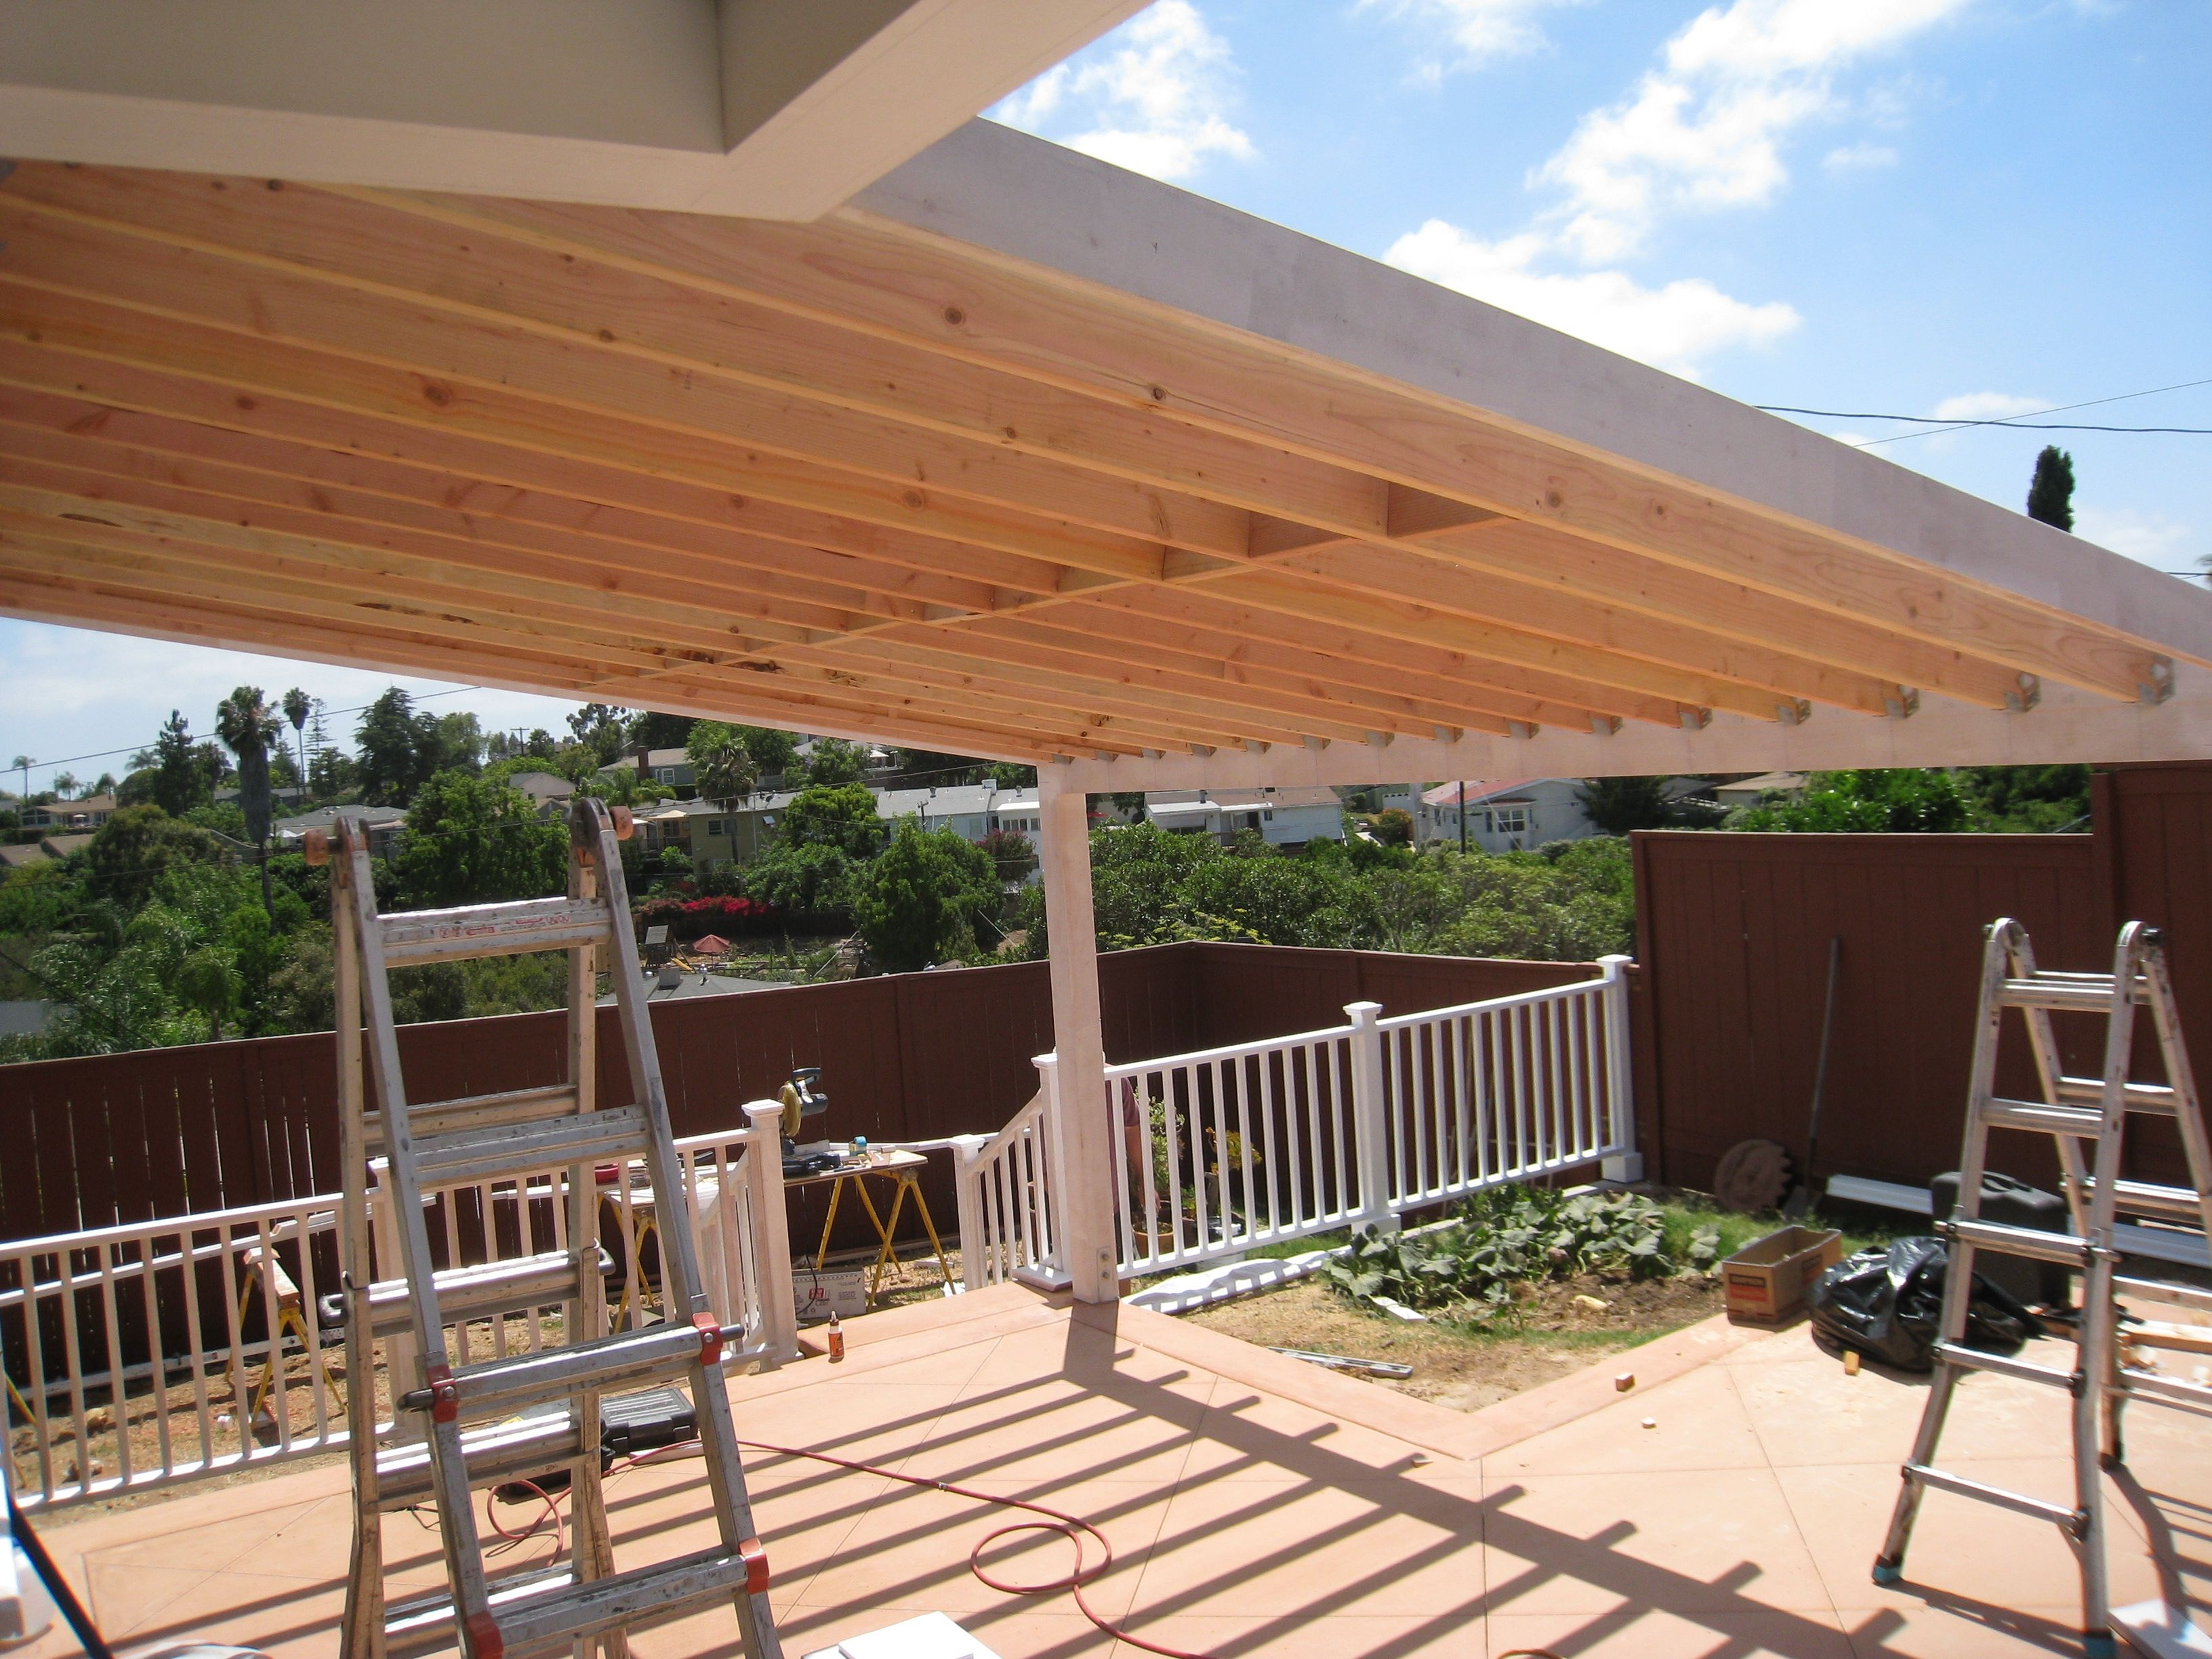 Covered Patio Construction Plans